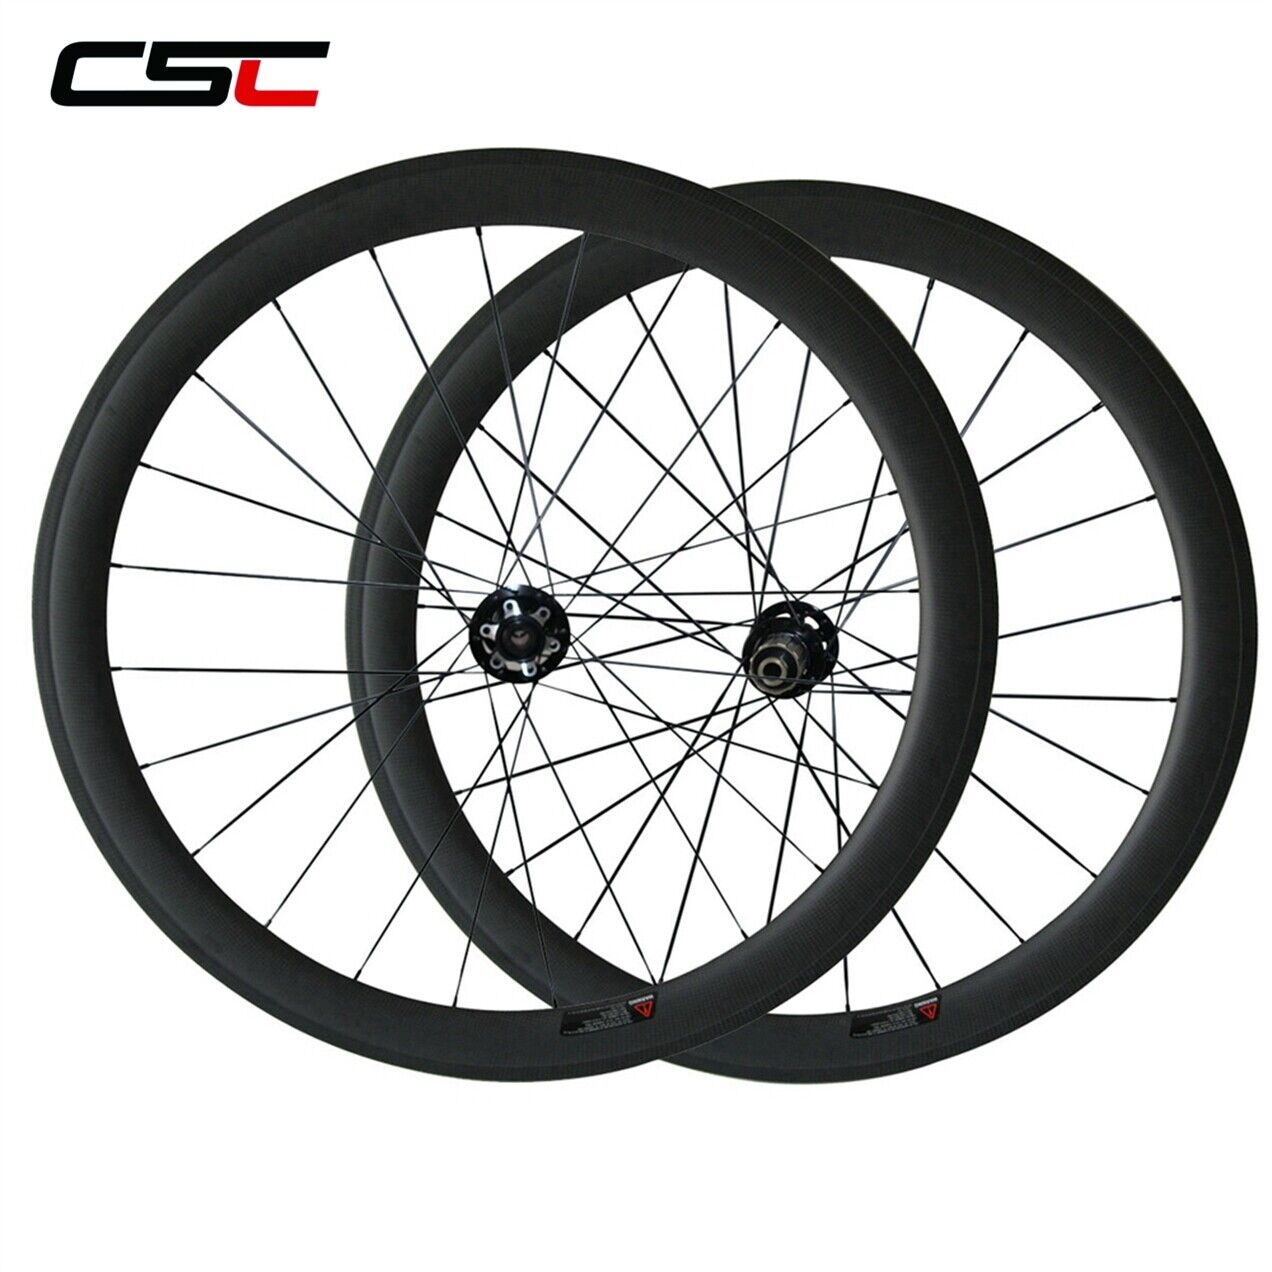 650C 50mm Disc Brake Wheels Cyclocross Tubeless Clincher Carbon Bicycle Wheelset